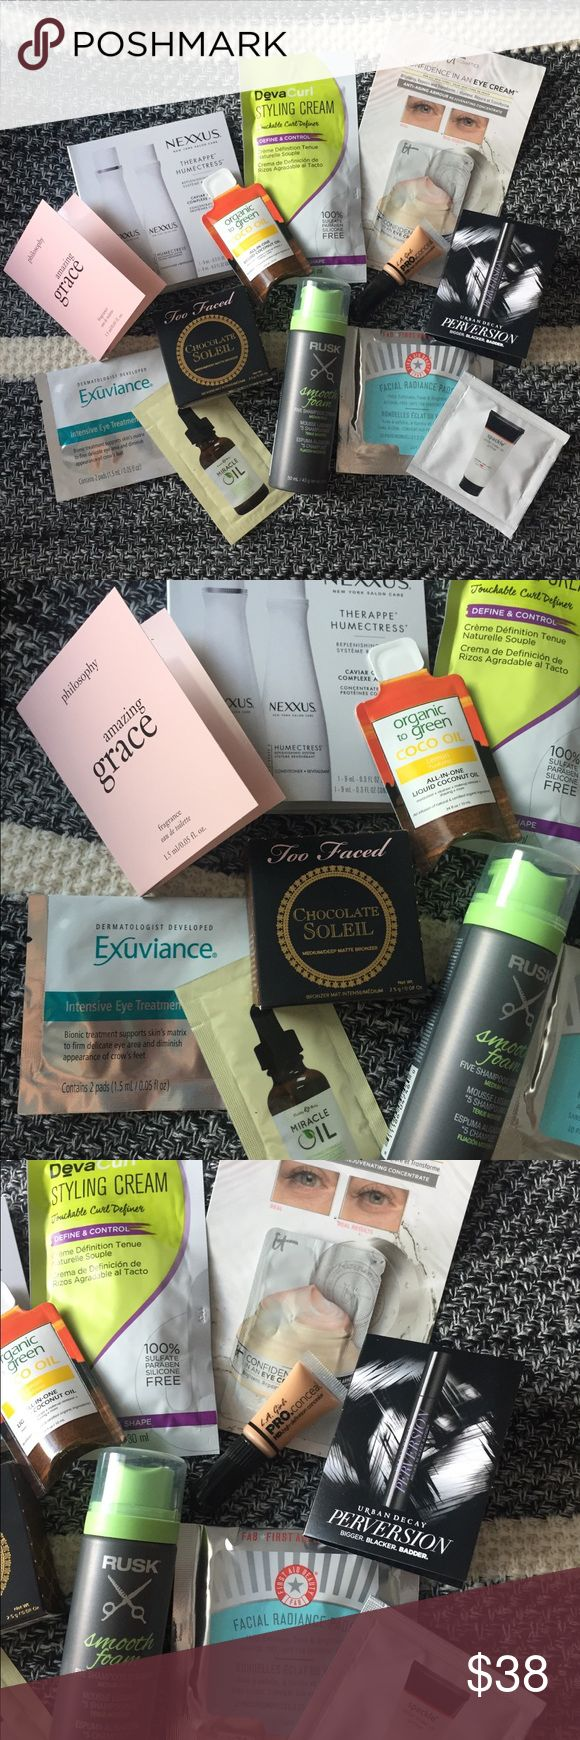 13 Piece Beauty Sampler Bundle BRAND NEW - RUSK Smooth Foam Hair Product, Nexxus Therappe Set, Philosophy Amazing Grace Perfume, First Aid Beauty Facial Radiance Pads, Miracle Oil, Exuviance Eye Masque, DevaCurl Styling Cream, Urban Decay Perversion mascara, LA Girl ProConceal, Too Faced Chocolate Soleil bronzer, Laura Geller Spackle primer, Organic to Green Coconut Oil, IT Cosmetics Confidence in an Eye Cream + Velour Ulta Makeup Bag NWT • Ask all questions before buying! Too Faced Makeup